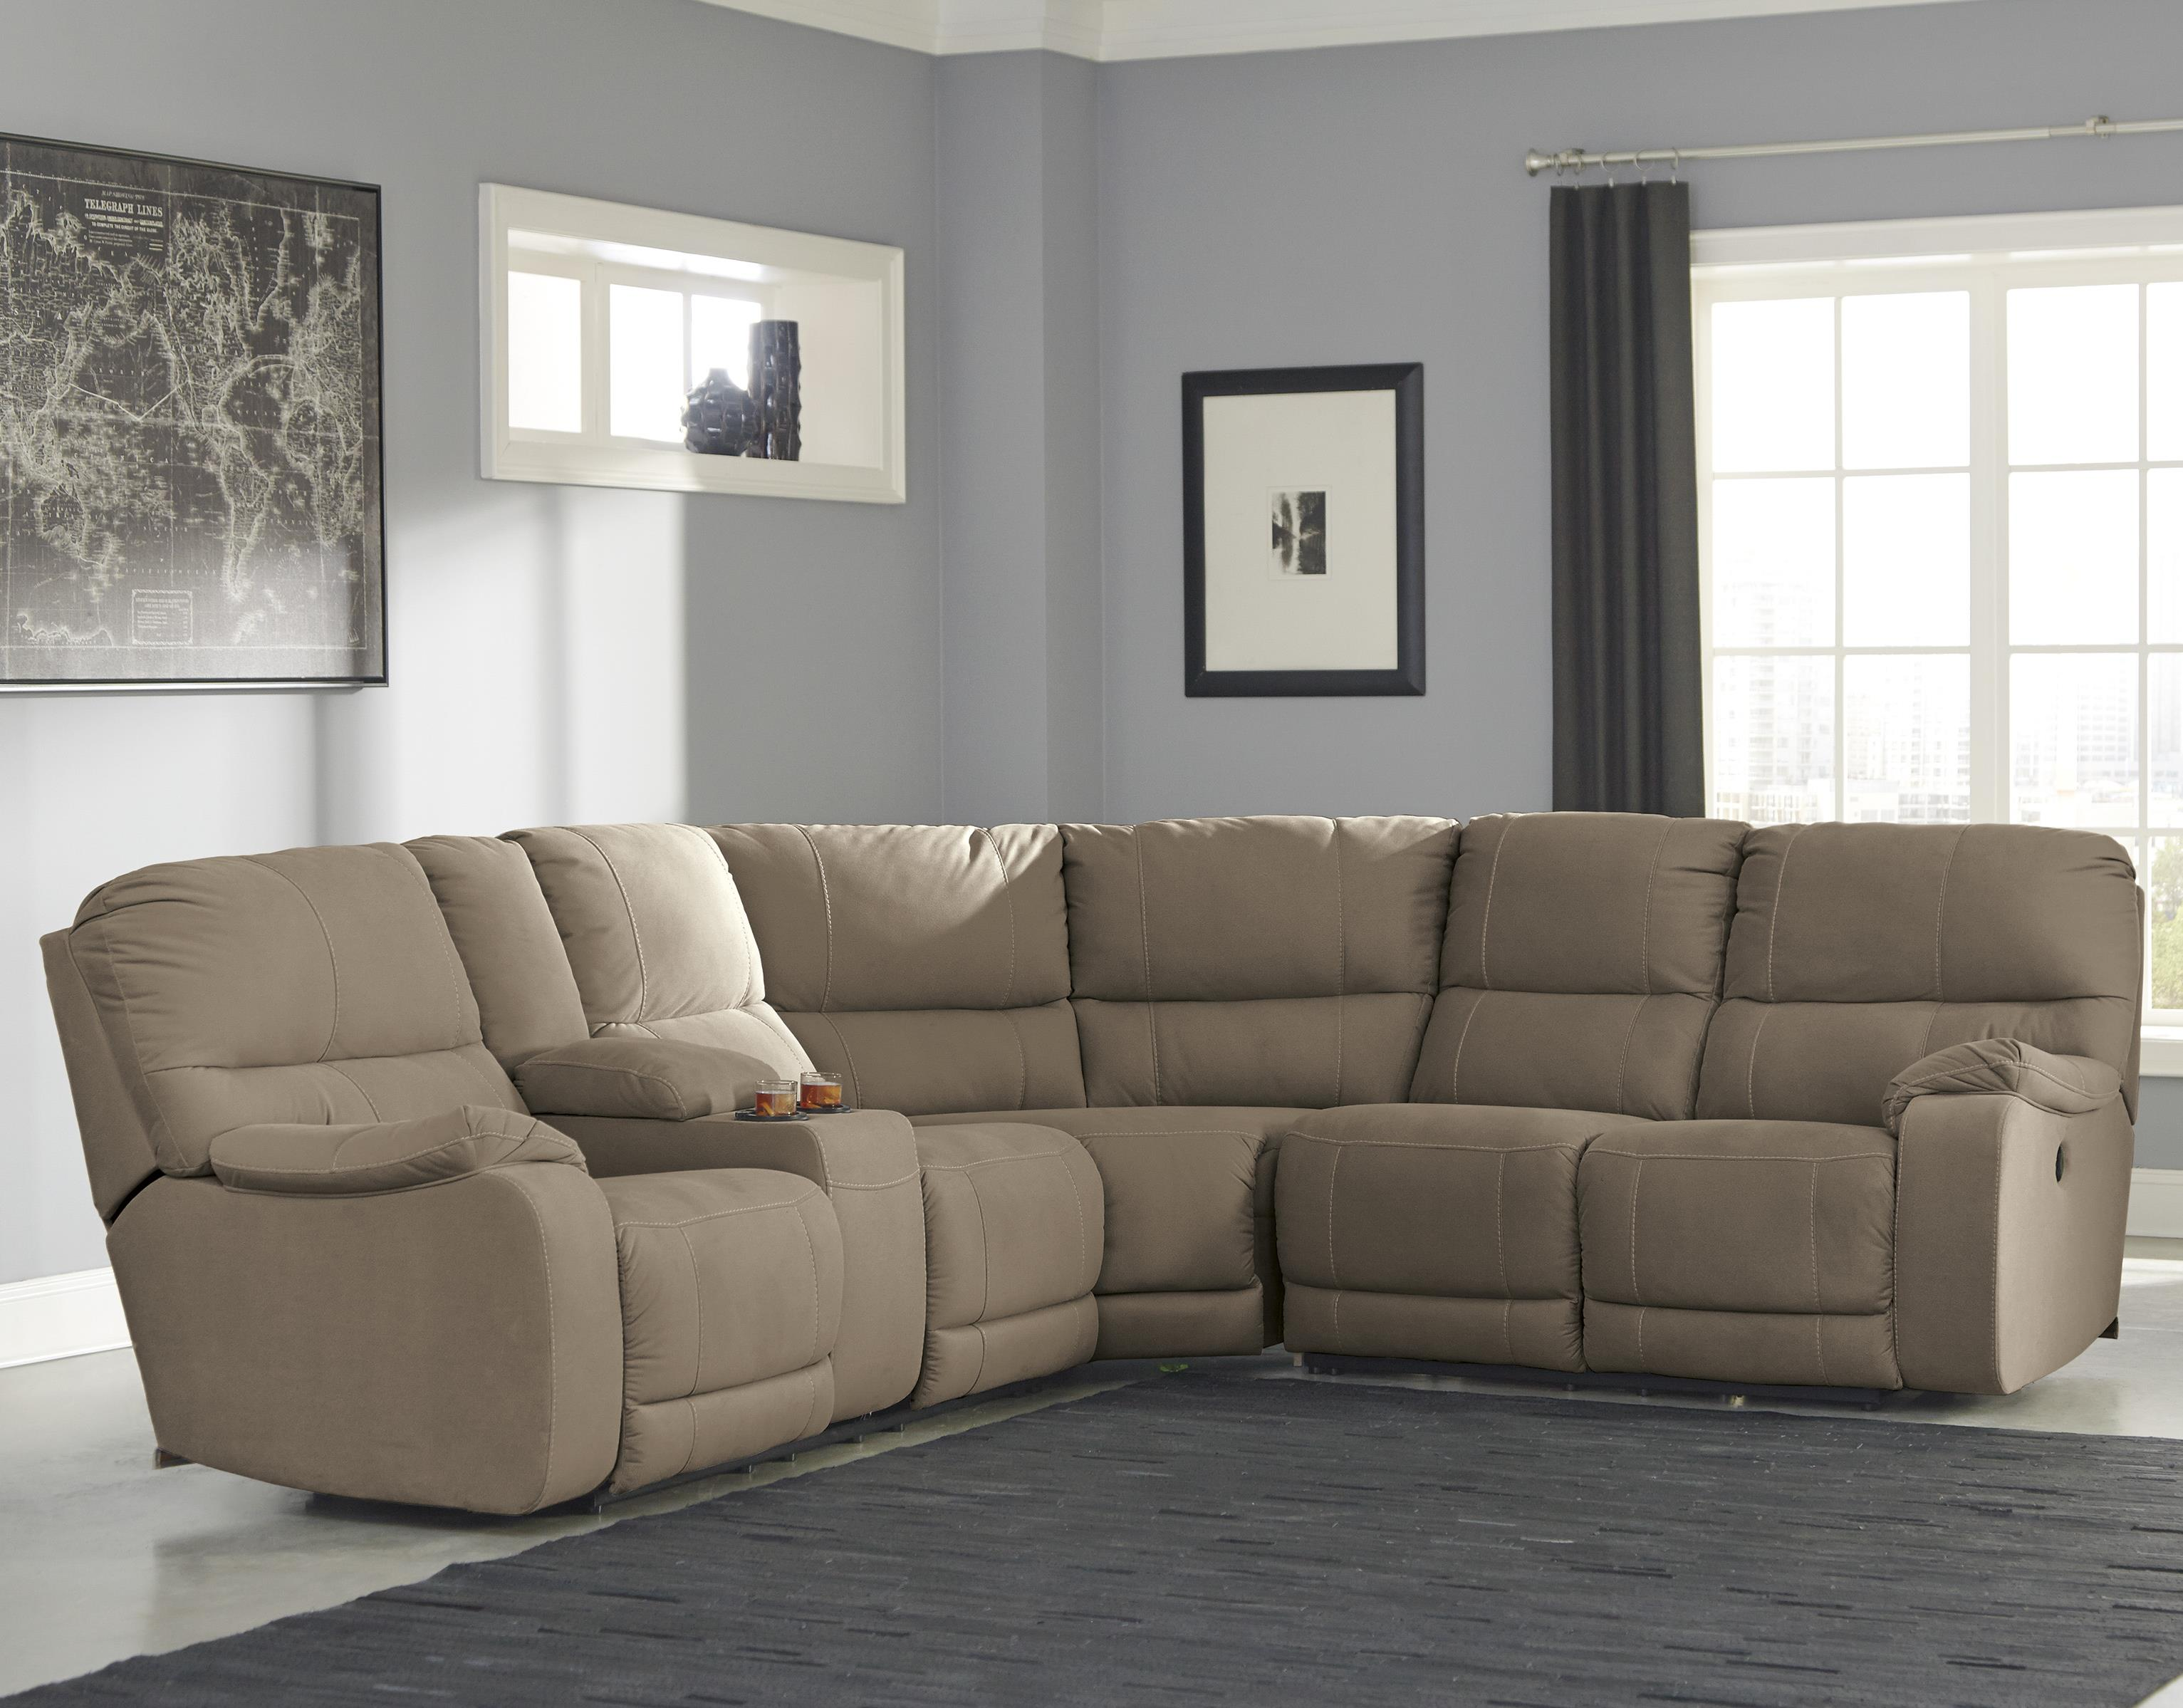 Benchcraft Bohannon Power Reclining Sectional with Console - Item Number: 5740301+77+75